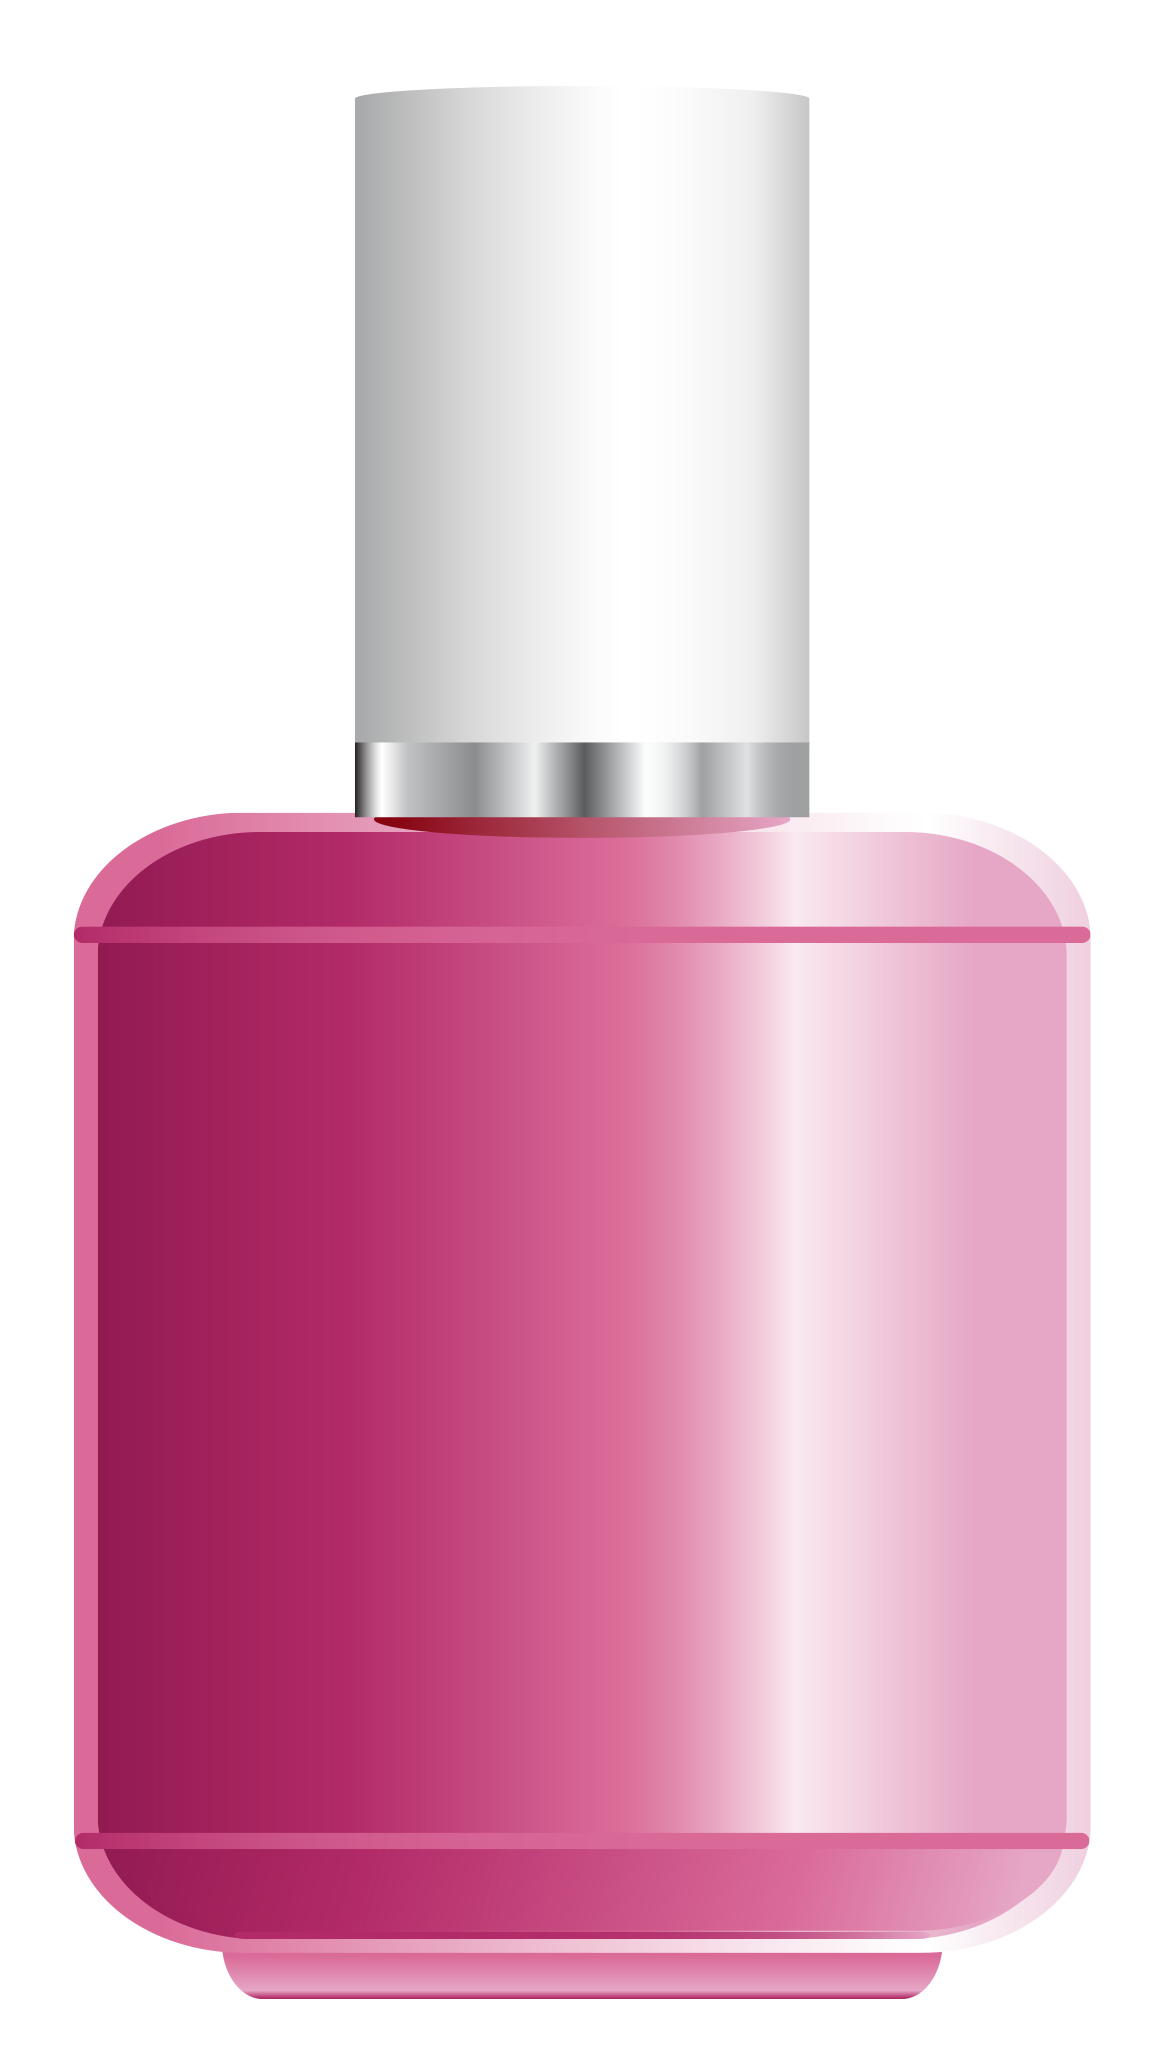 Pink polish png picture. Nails clipart cute nail